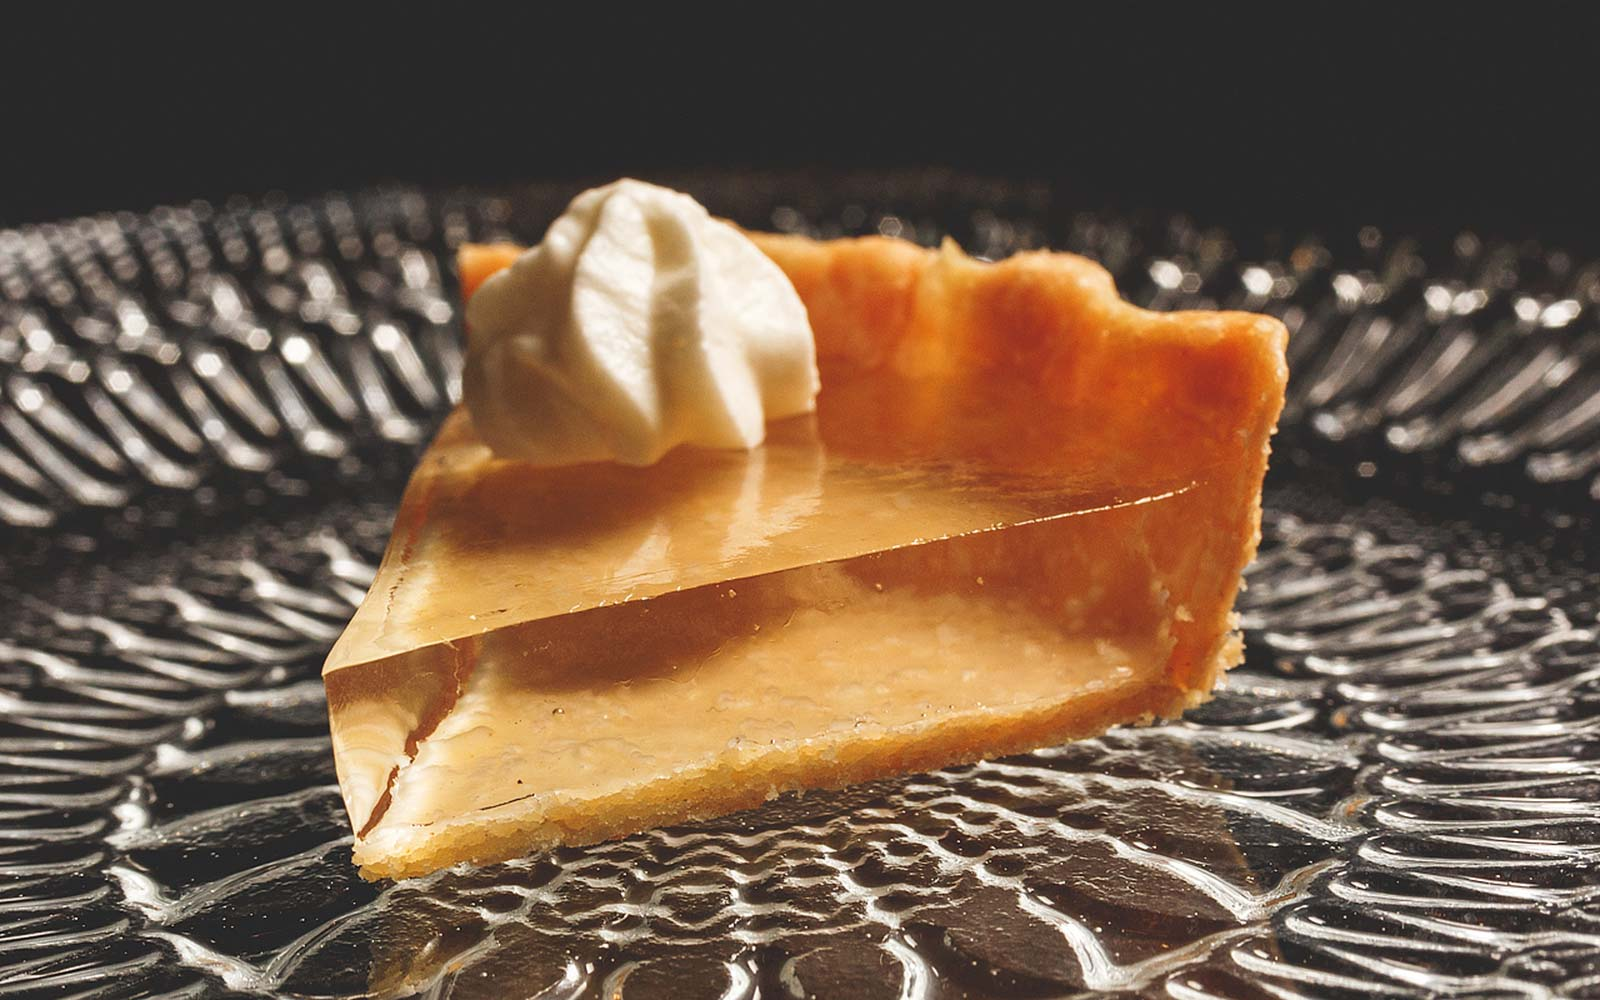 Clear Pumpkin Pie Is Here to Make Your Thanksgiving Even More Awkward